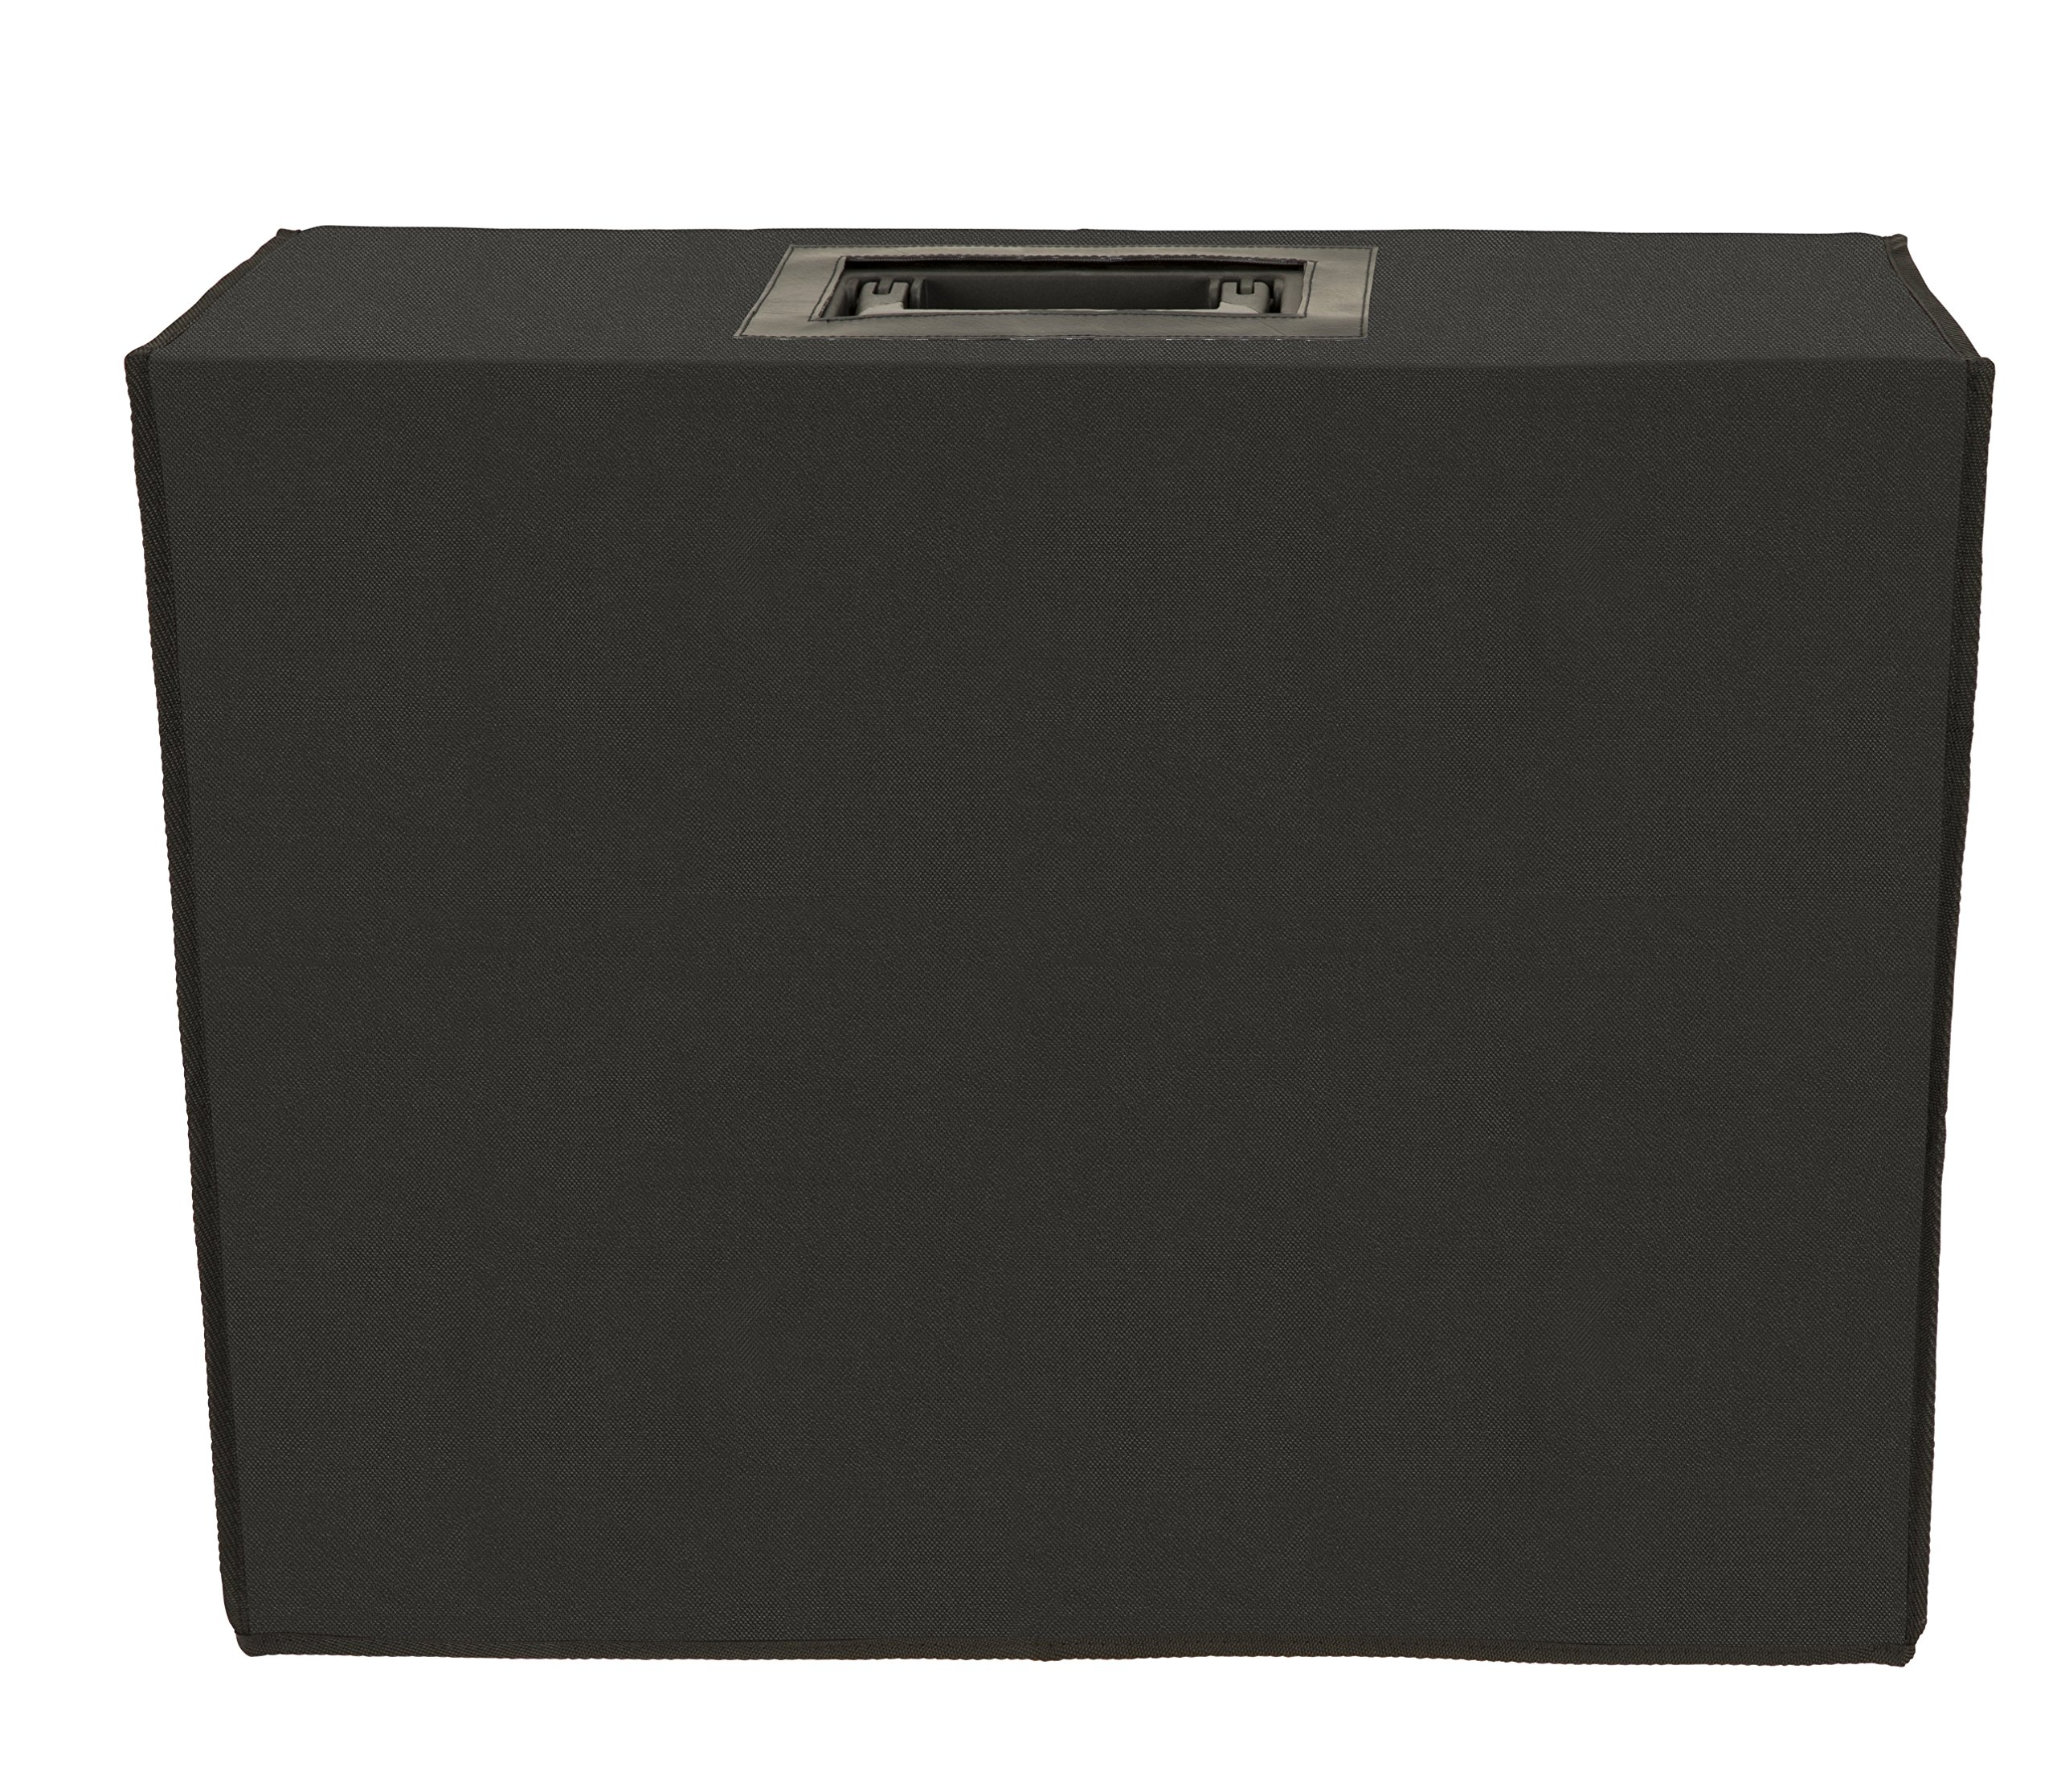 Fender Mustang GT 200 Amplifier Cover Black by Fender (Image #5)